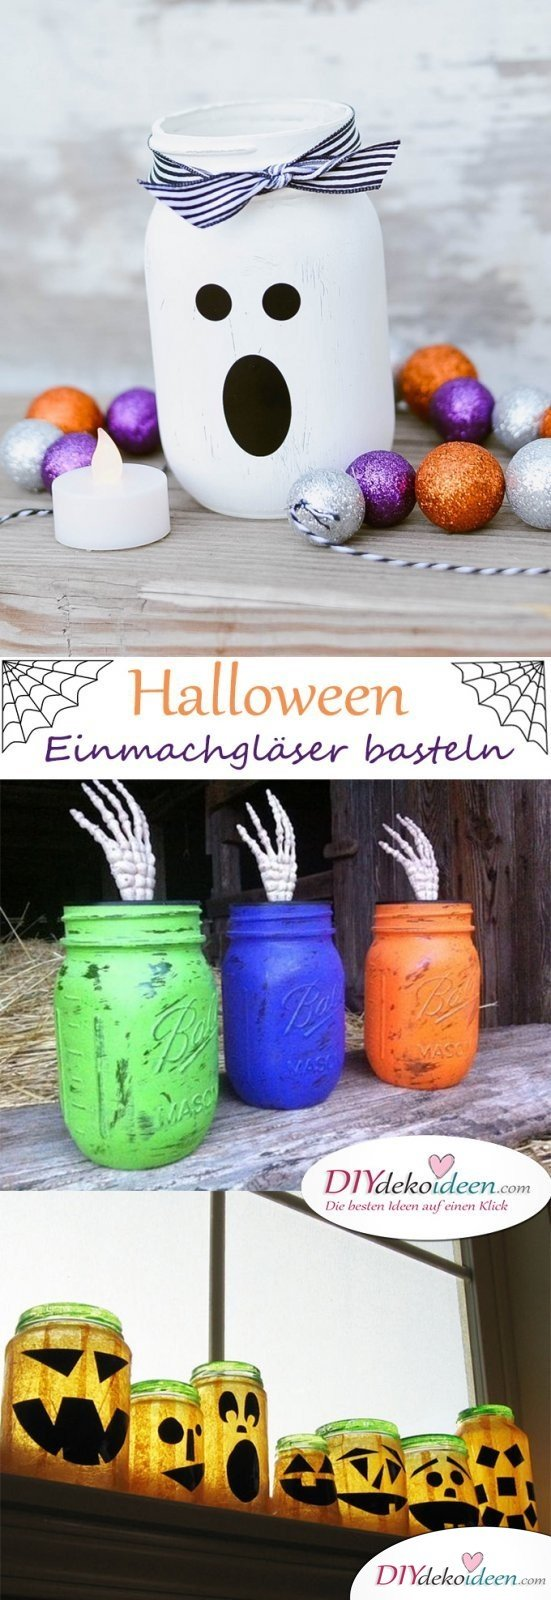 Horrible Halloween Einmachgläser bastelen - The best DIY Bastelideen